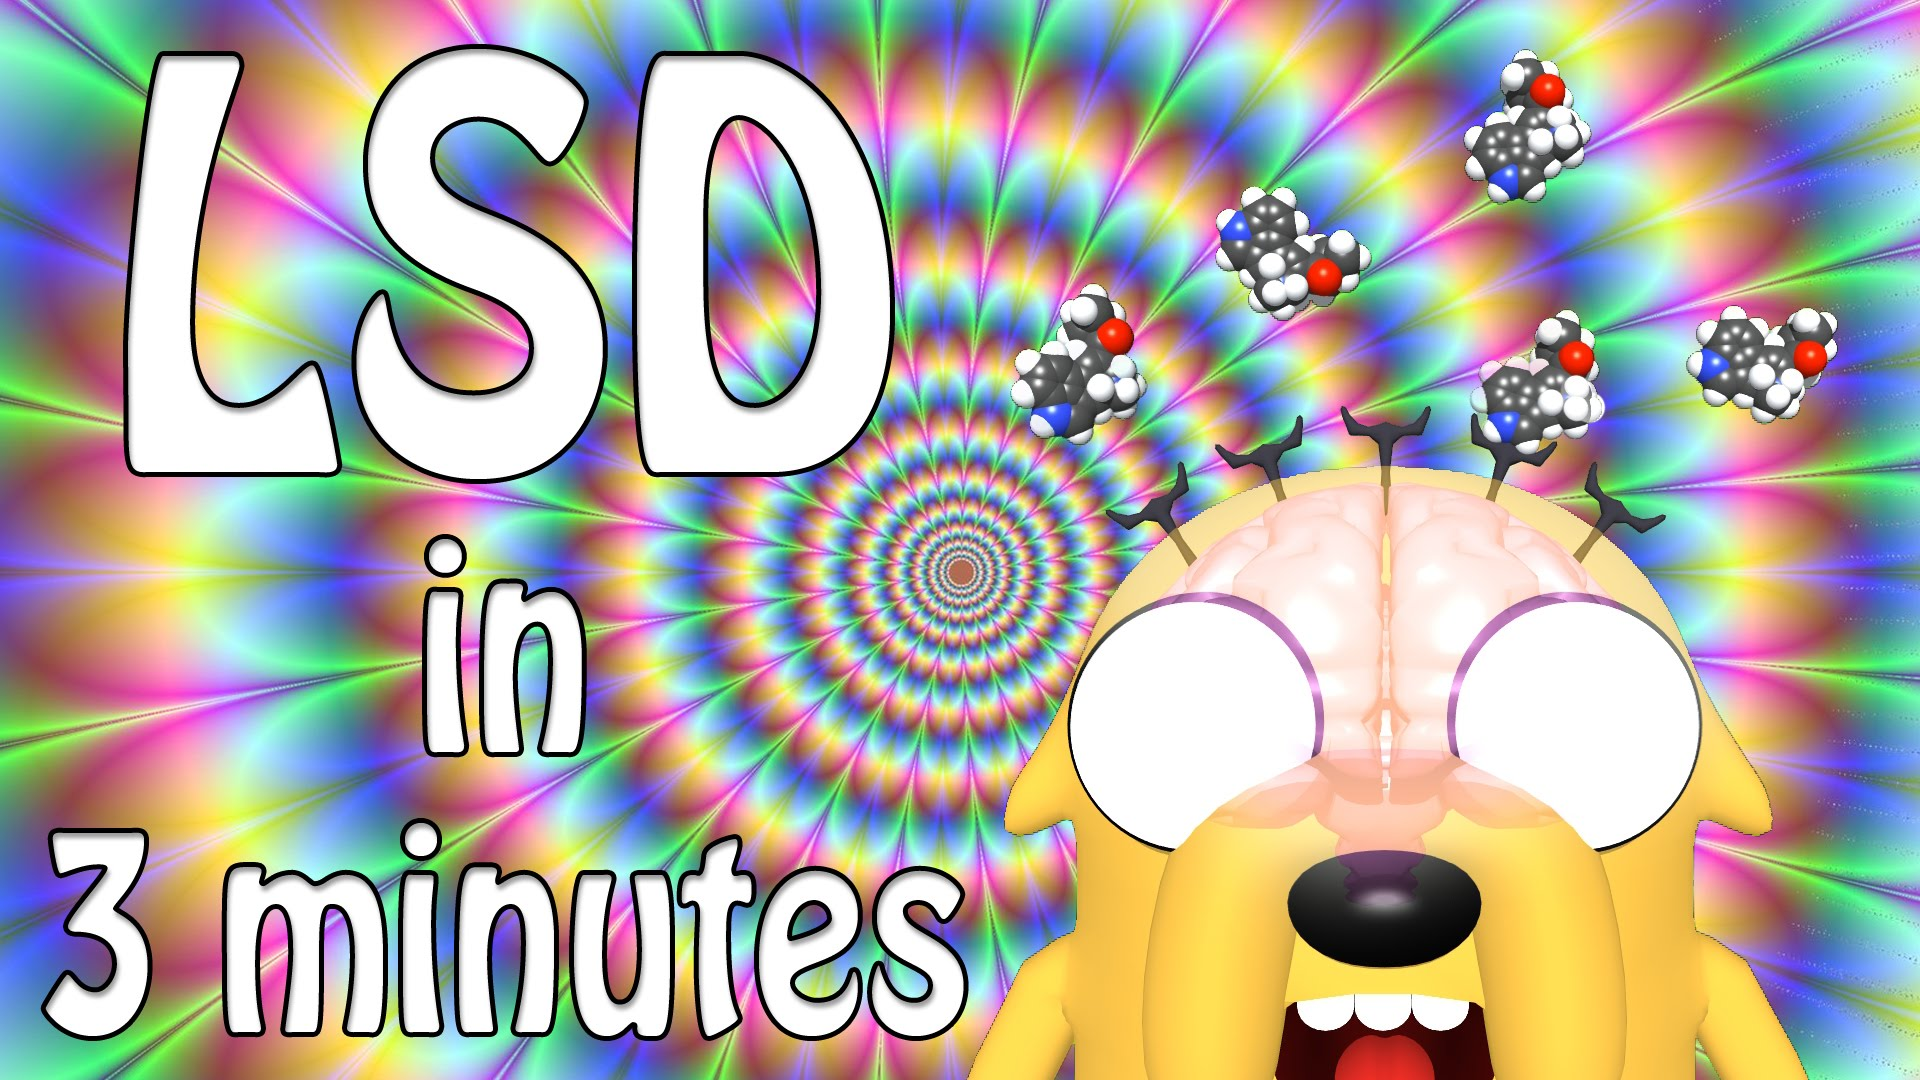 The Psychedelic Drug LSD (Lysergic Acid Diethylamide